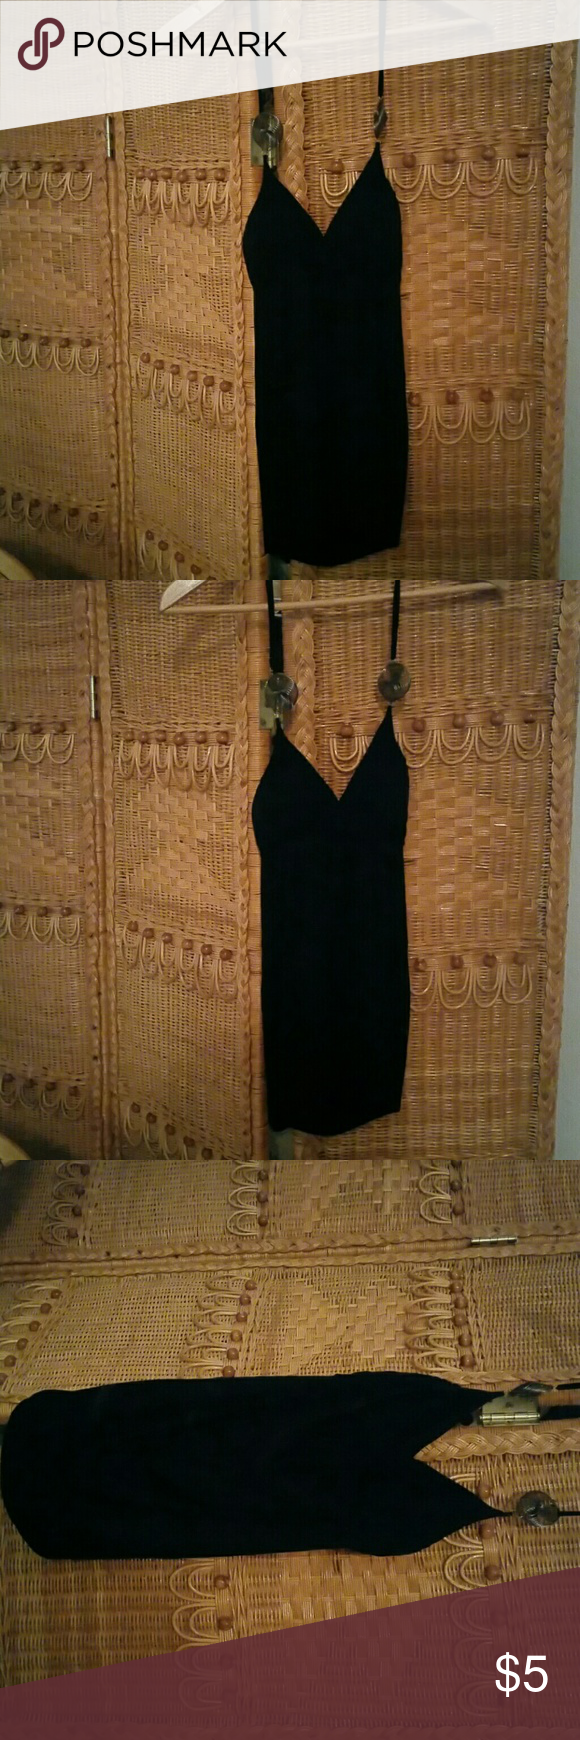 Black halter top Cute black halter top with silver embellishments Tops Blouses